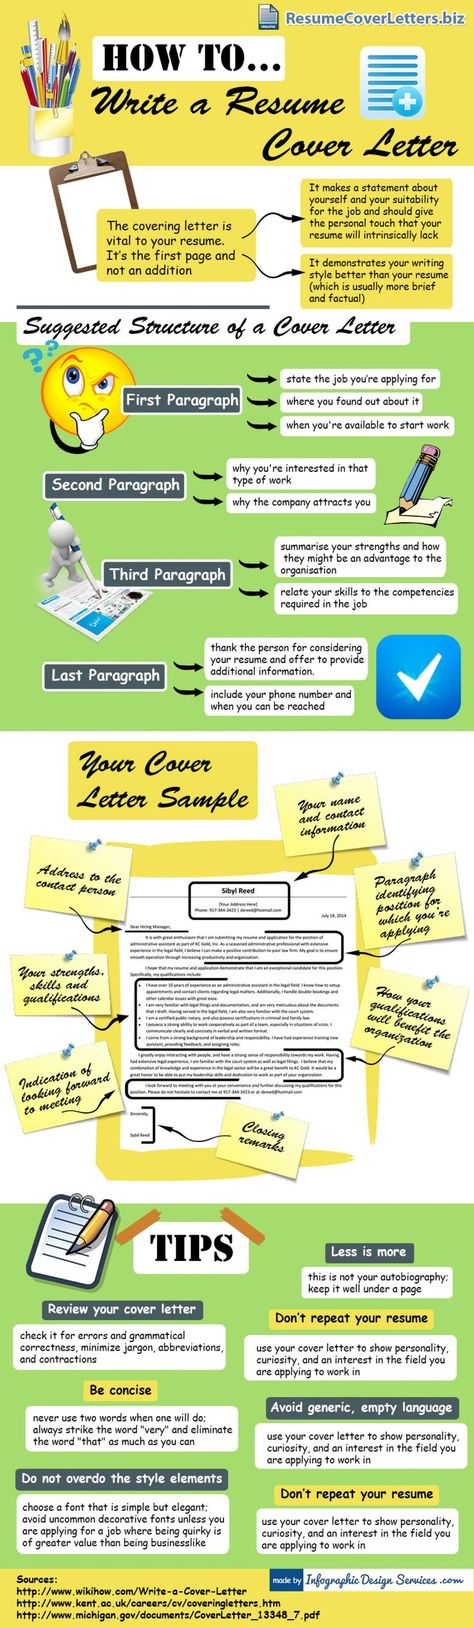 112 best Job Hunting Tips images on Pinterest Resume ideas - avoiding first resume mistakes